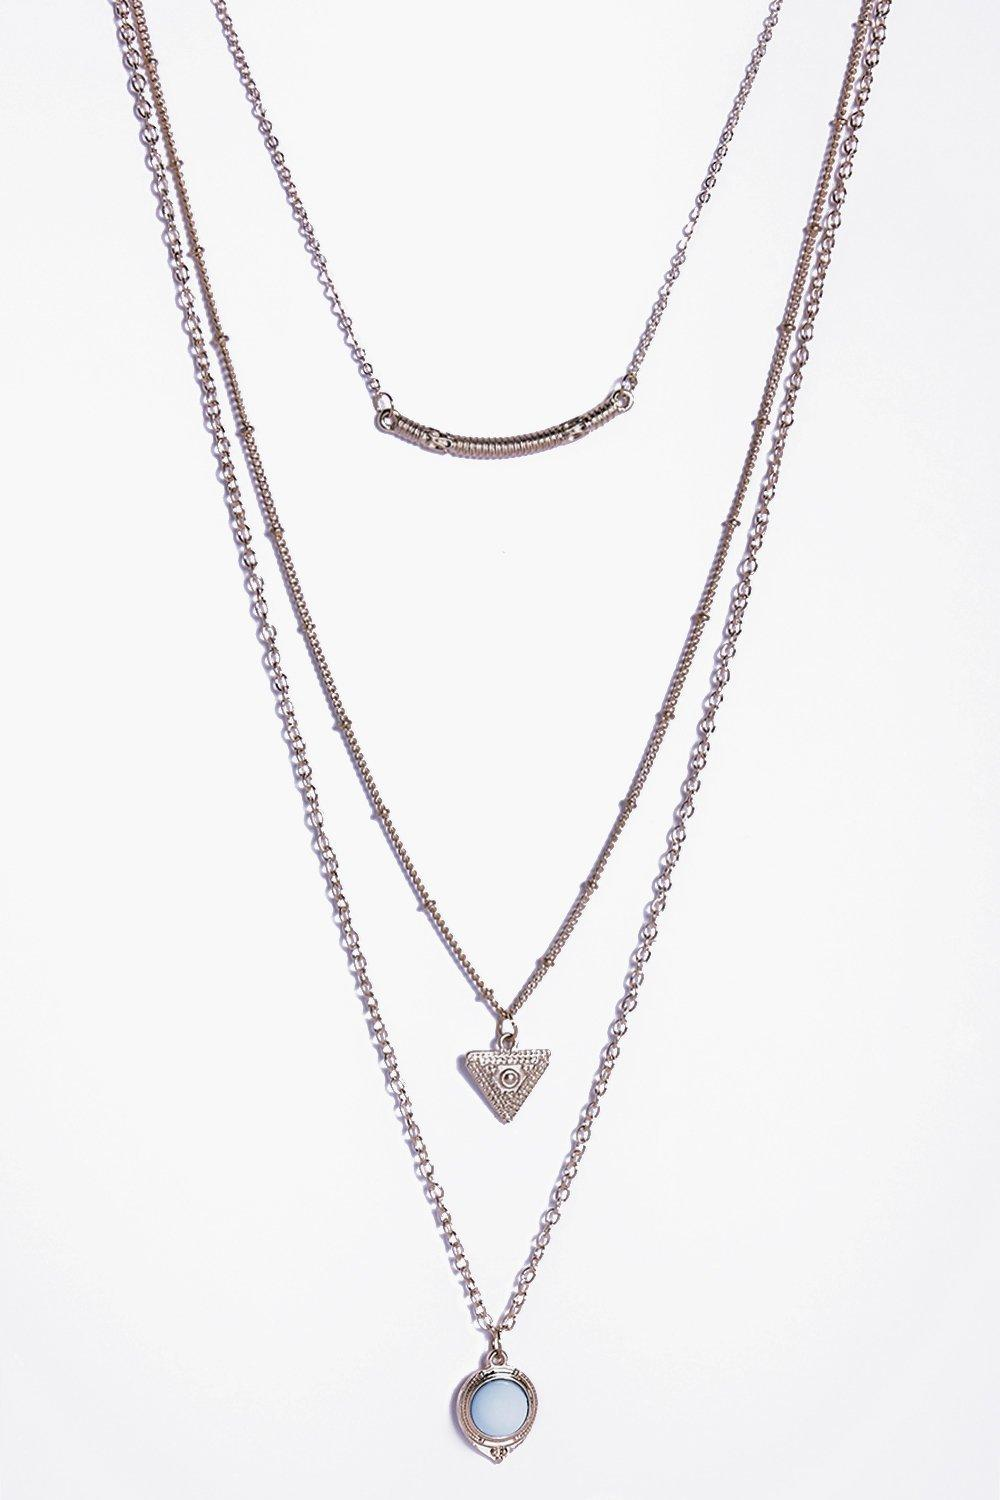 Mai Heart And Stone Layered Necklace